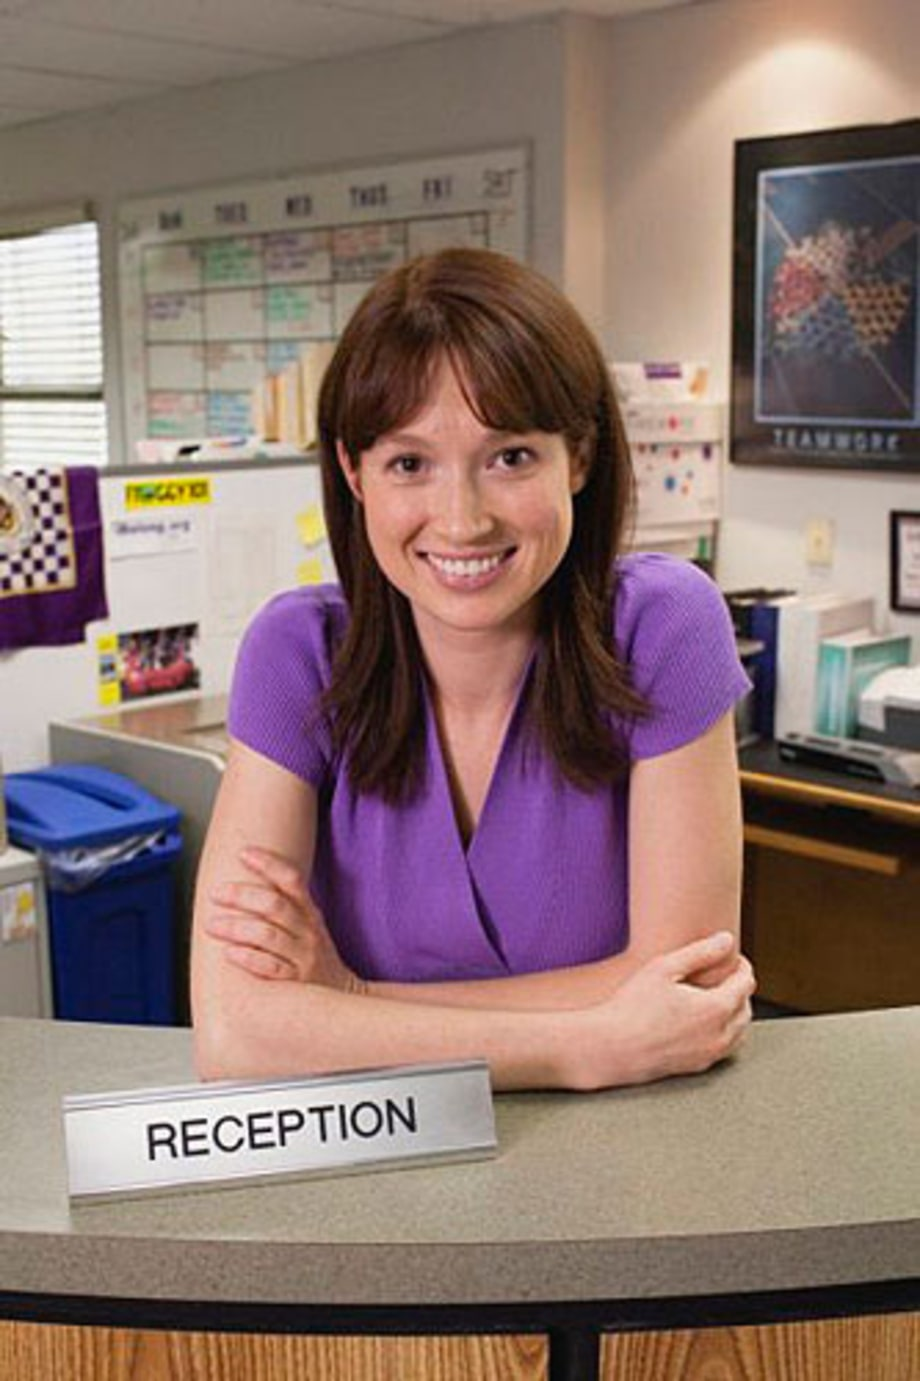 Ellie Kemper as Erin Hannon - 'The Office'